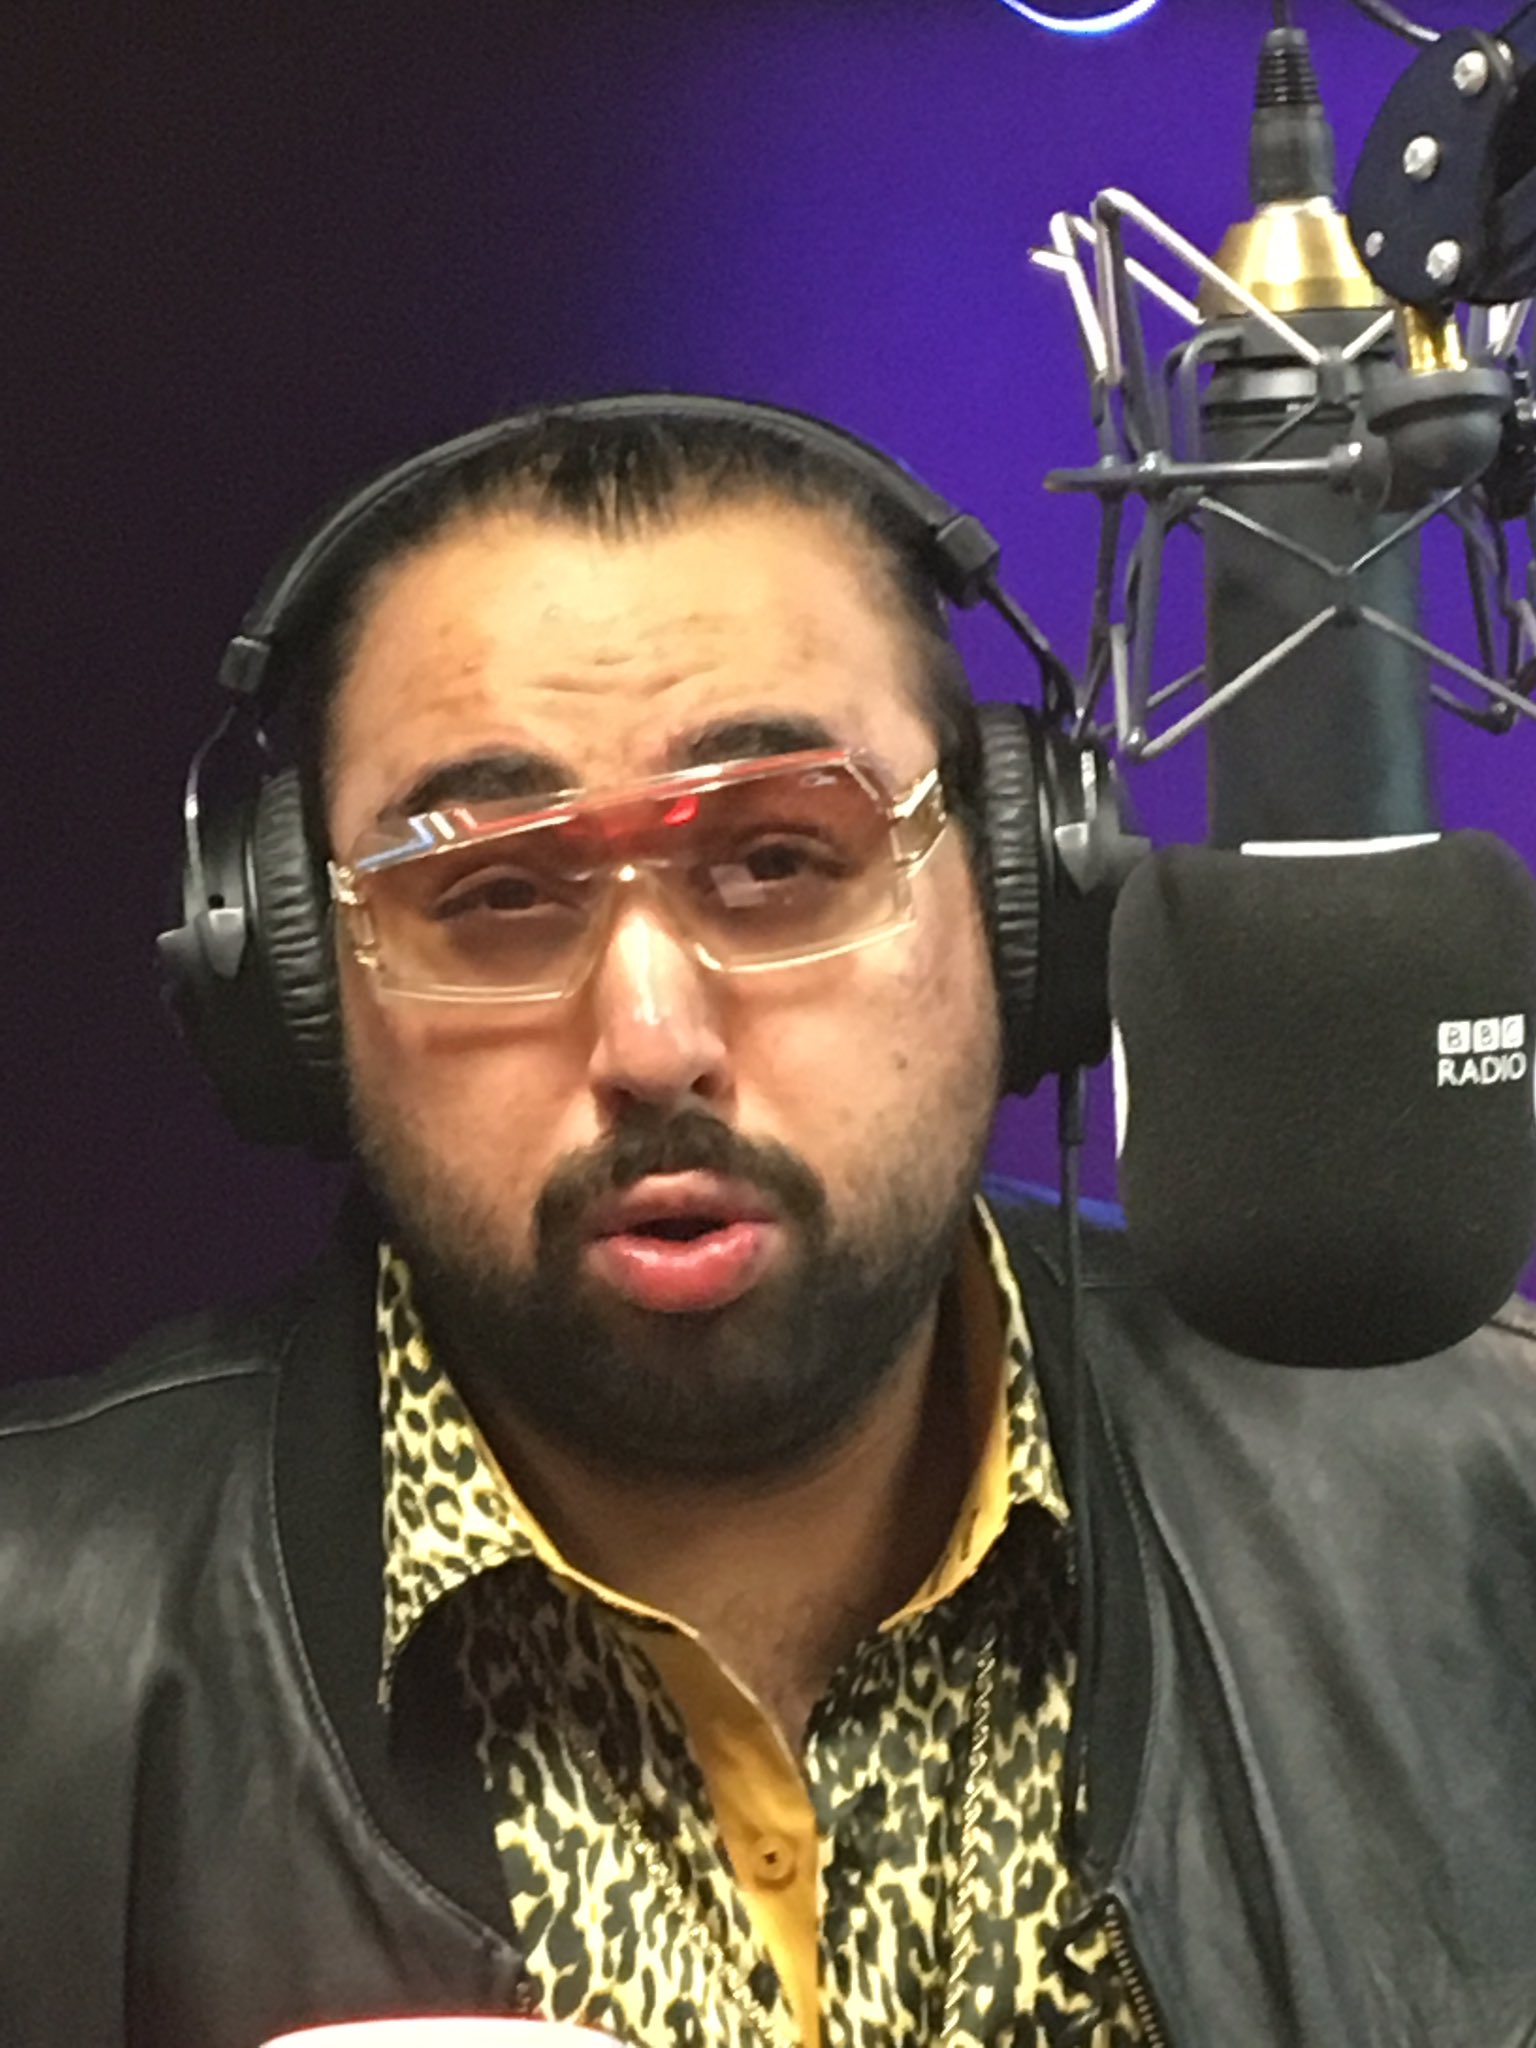 Here is @CHABUDDYGEEZY and his model pose. He's on with us now @BBCR1 #smouldering #realmenhavecurves https://t.co/xYurwSlPIA